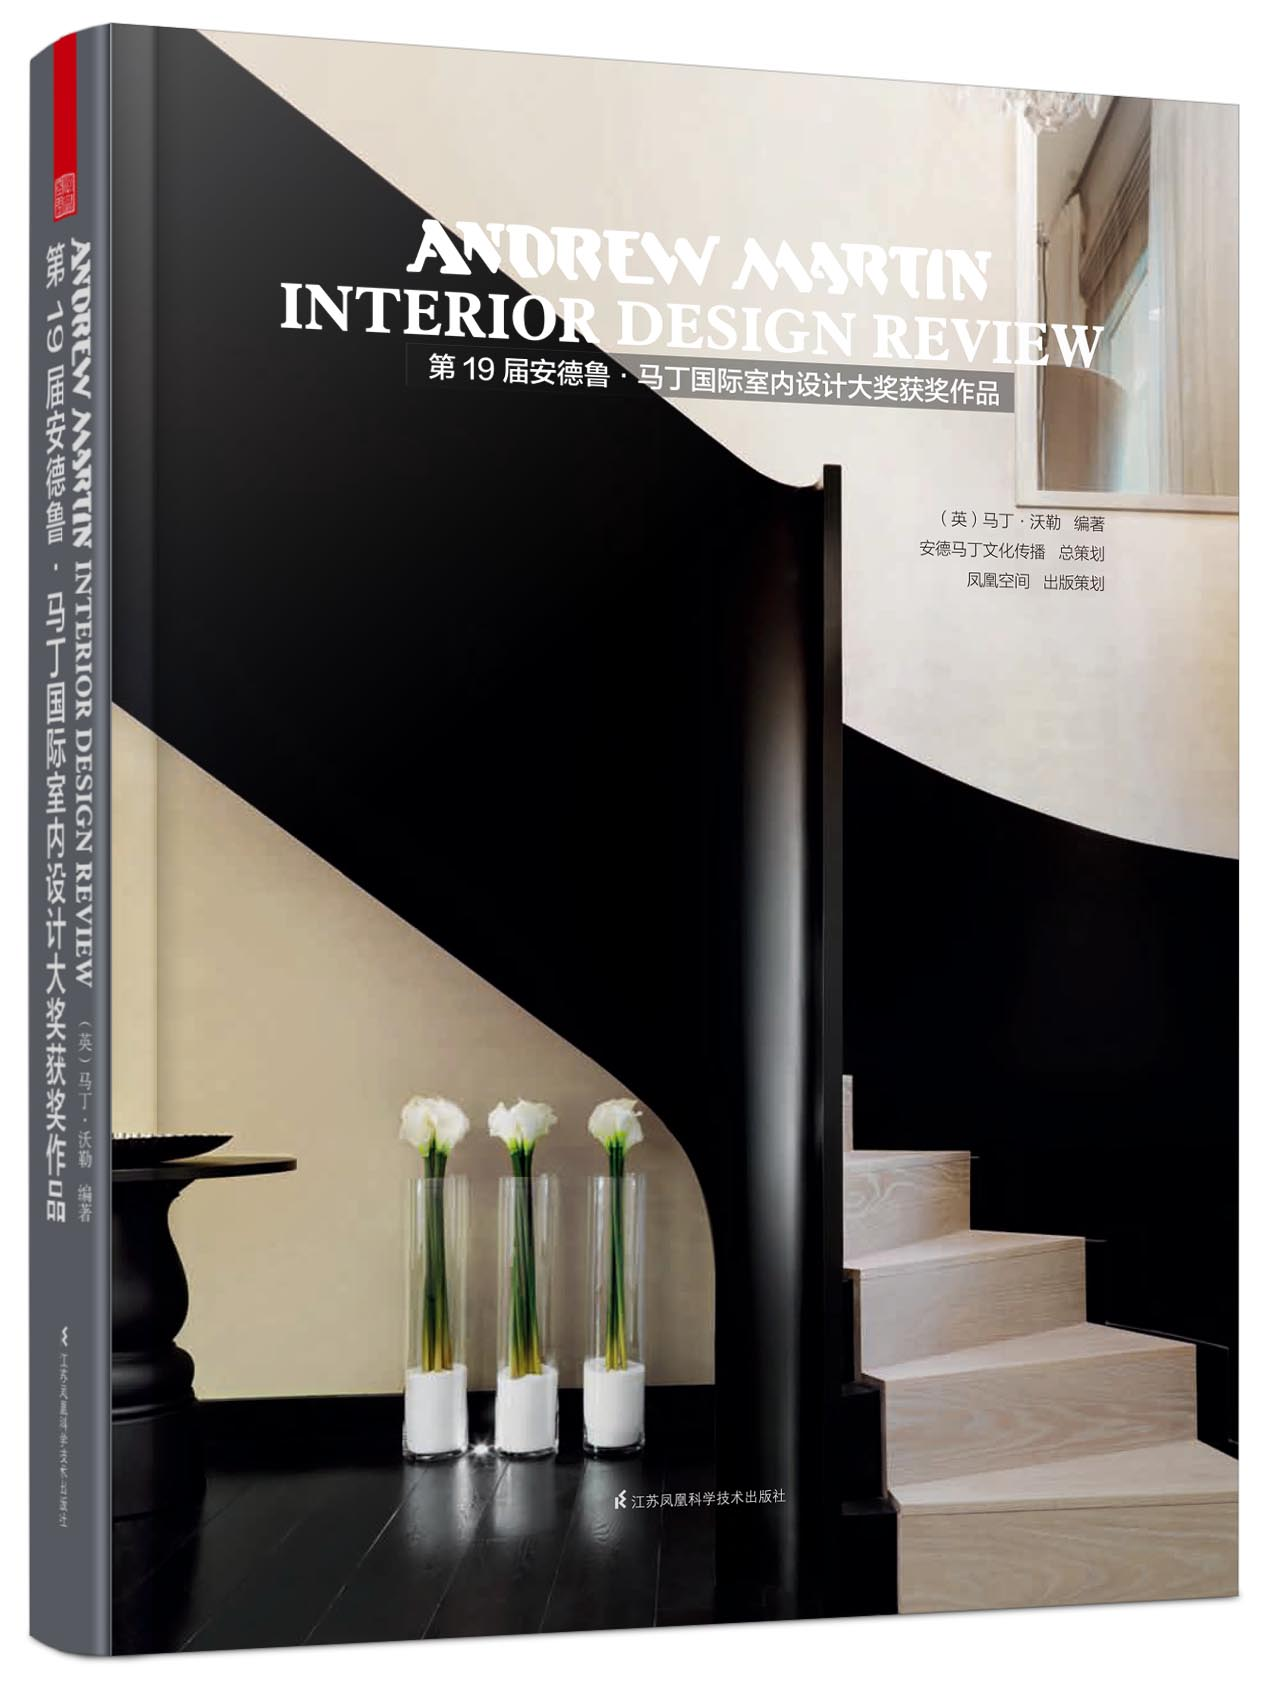 Andrew Martin Interior Design Review Vol19iFengSpacedesign